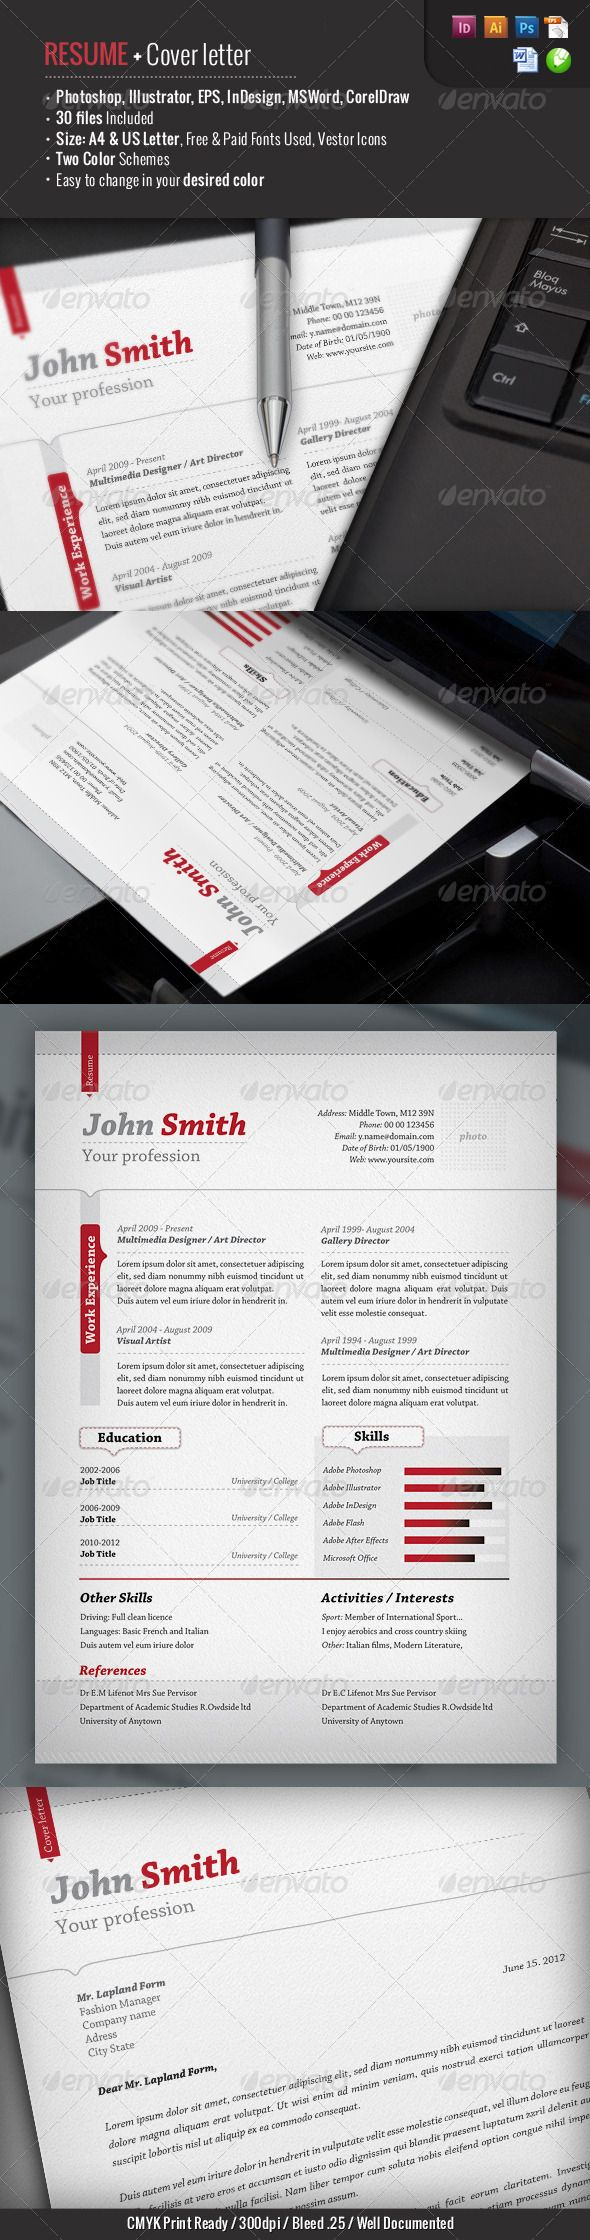 resume cover letter - Sample Of Cover Letter For Resume